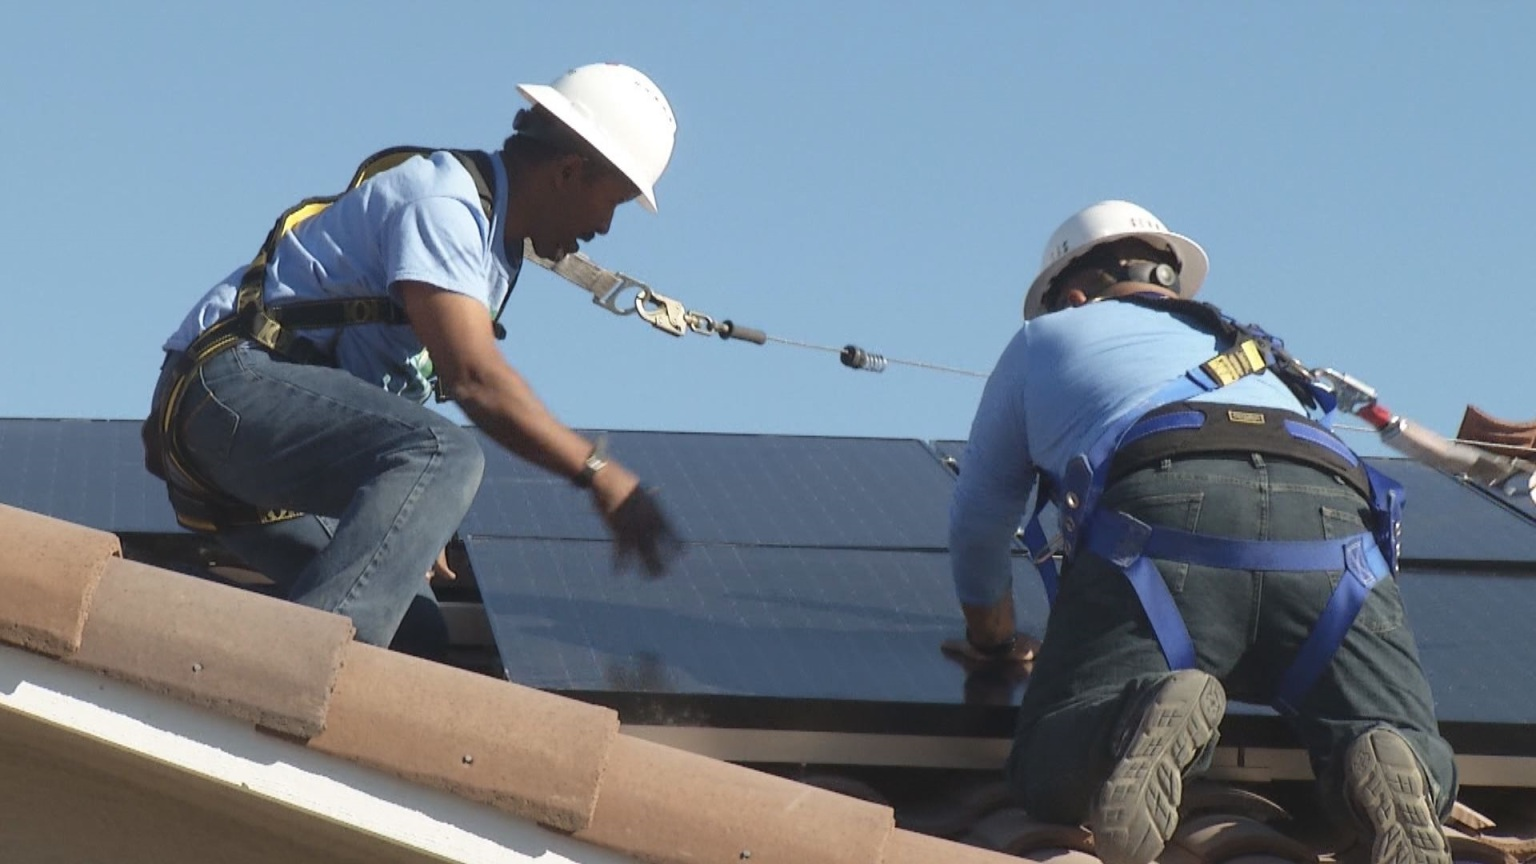 Local Solar CEO says Proposed Cuts to Renewable Energy Won't Have Lasting Impact